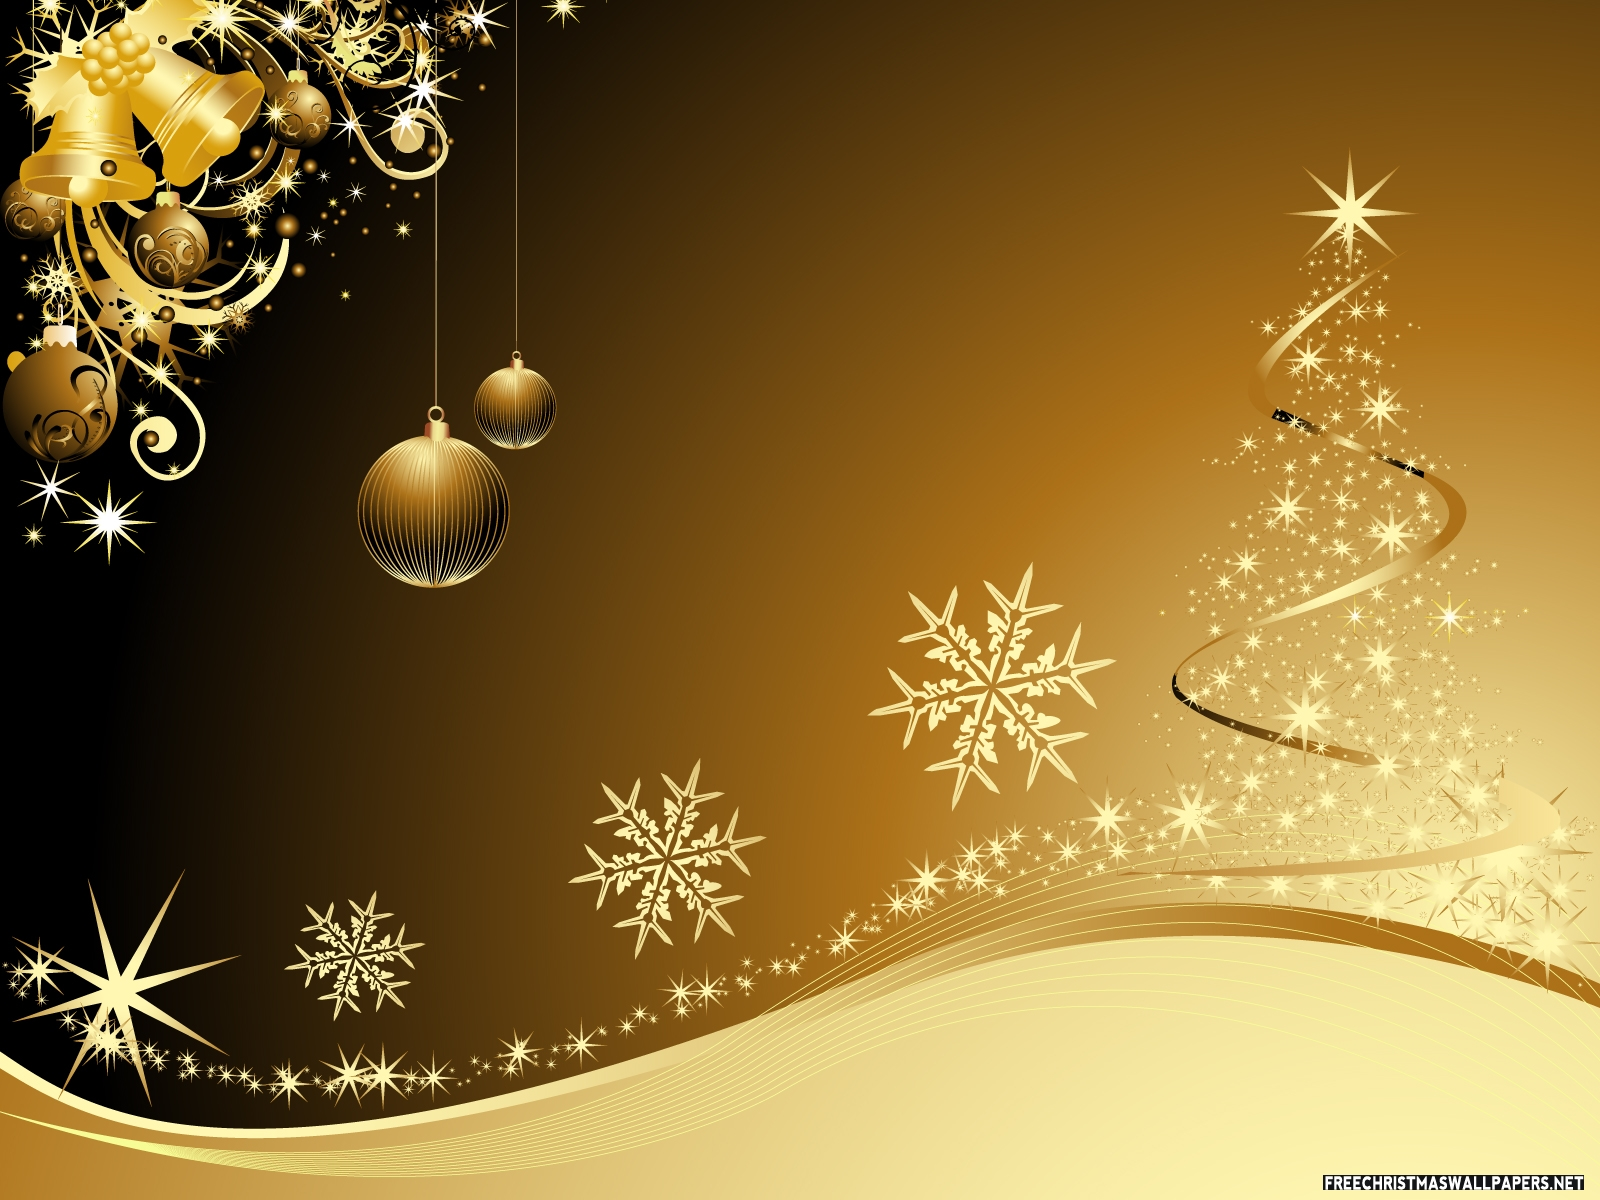 wallpaper christmas themes background